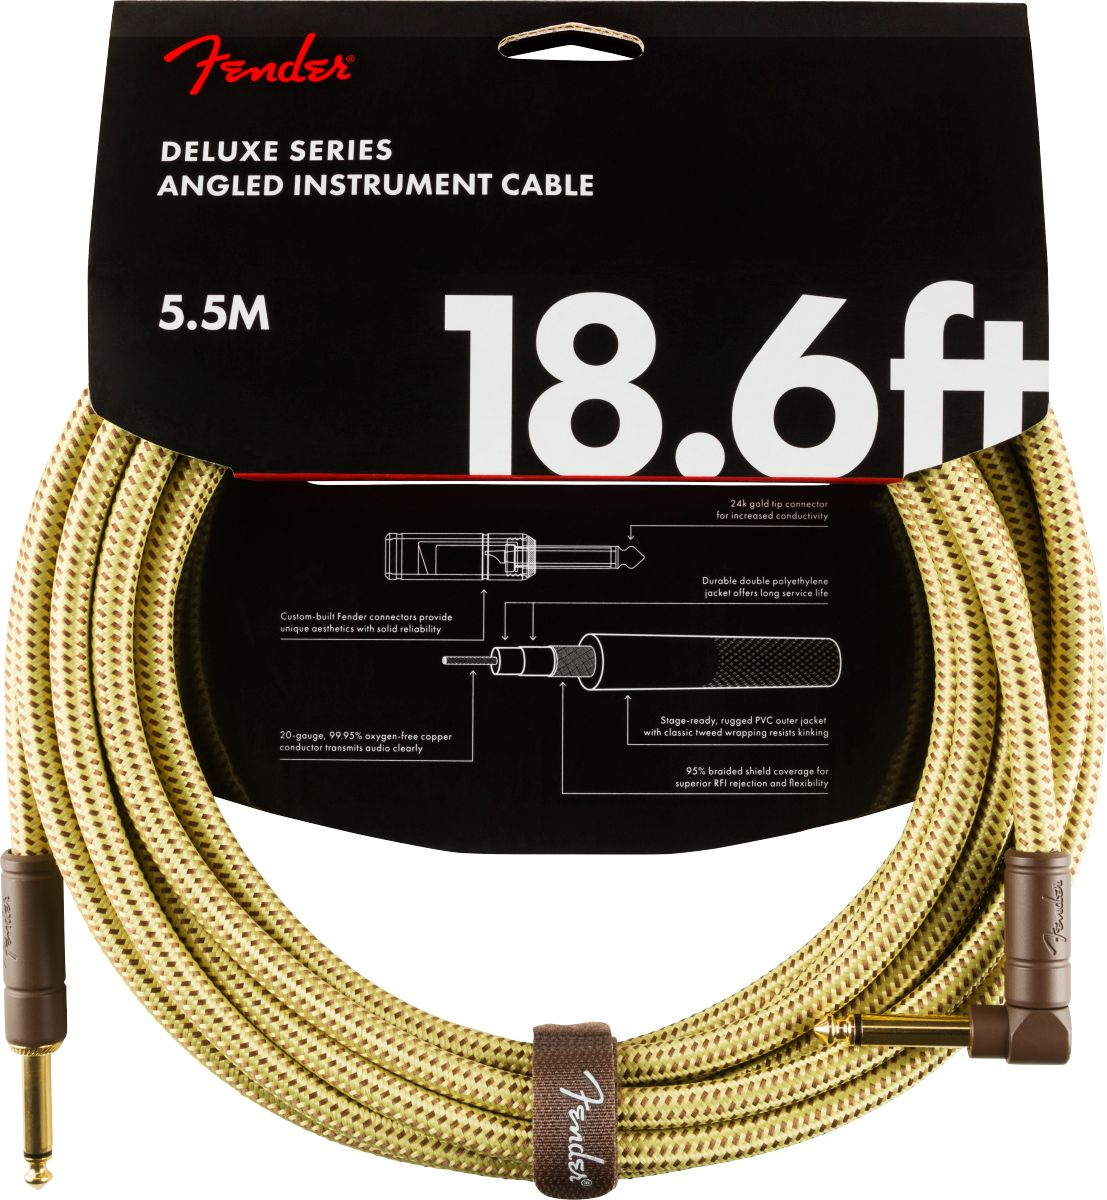 Fender Deluxe Series Instrument Cable 5,5m Angled Tweed